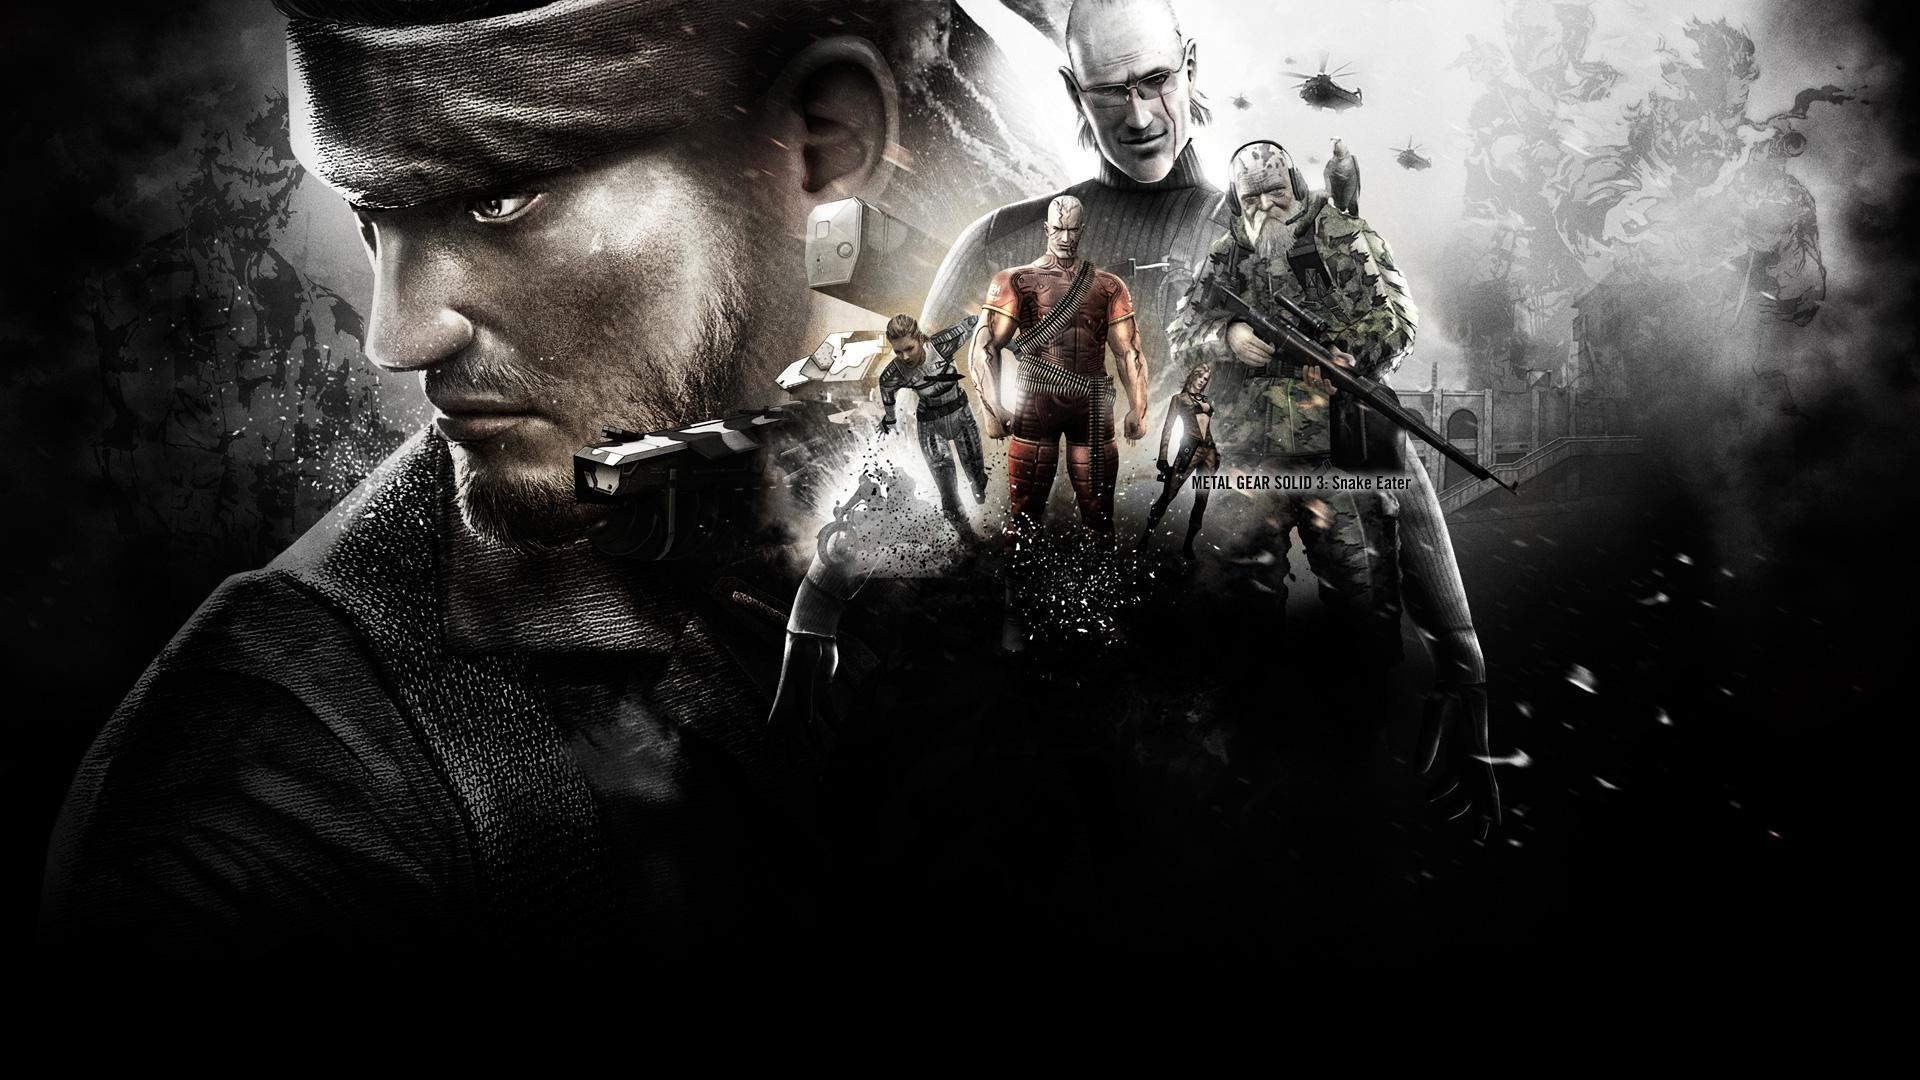 metal gear hd wallpapers - photo #2